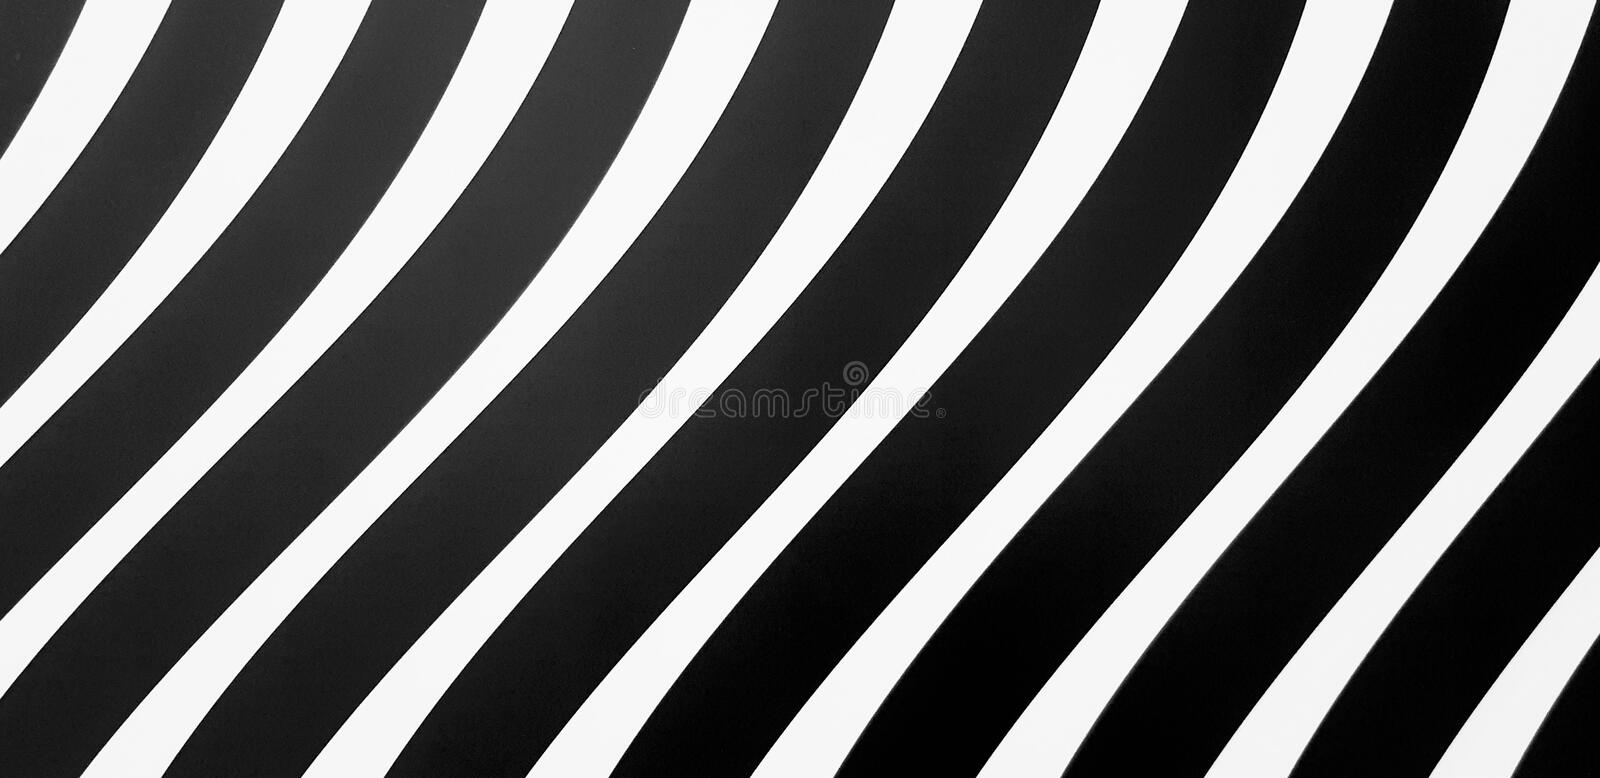 Abstract black and white line pattern background. Seamless art wallpaper concept royalty free stock image